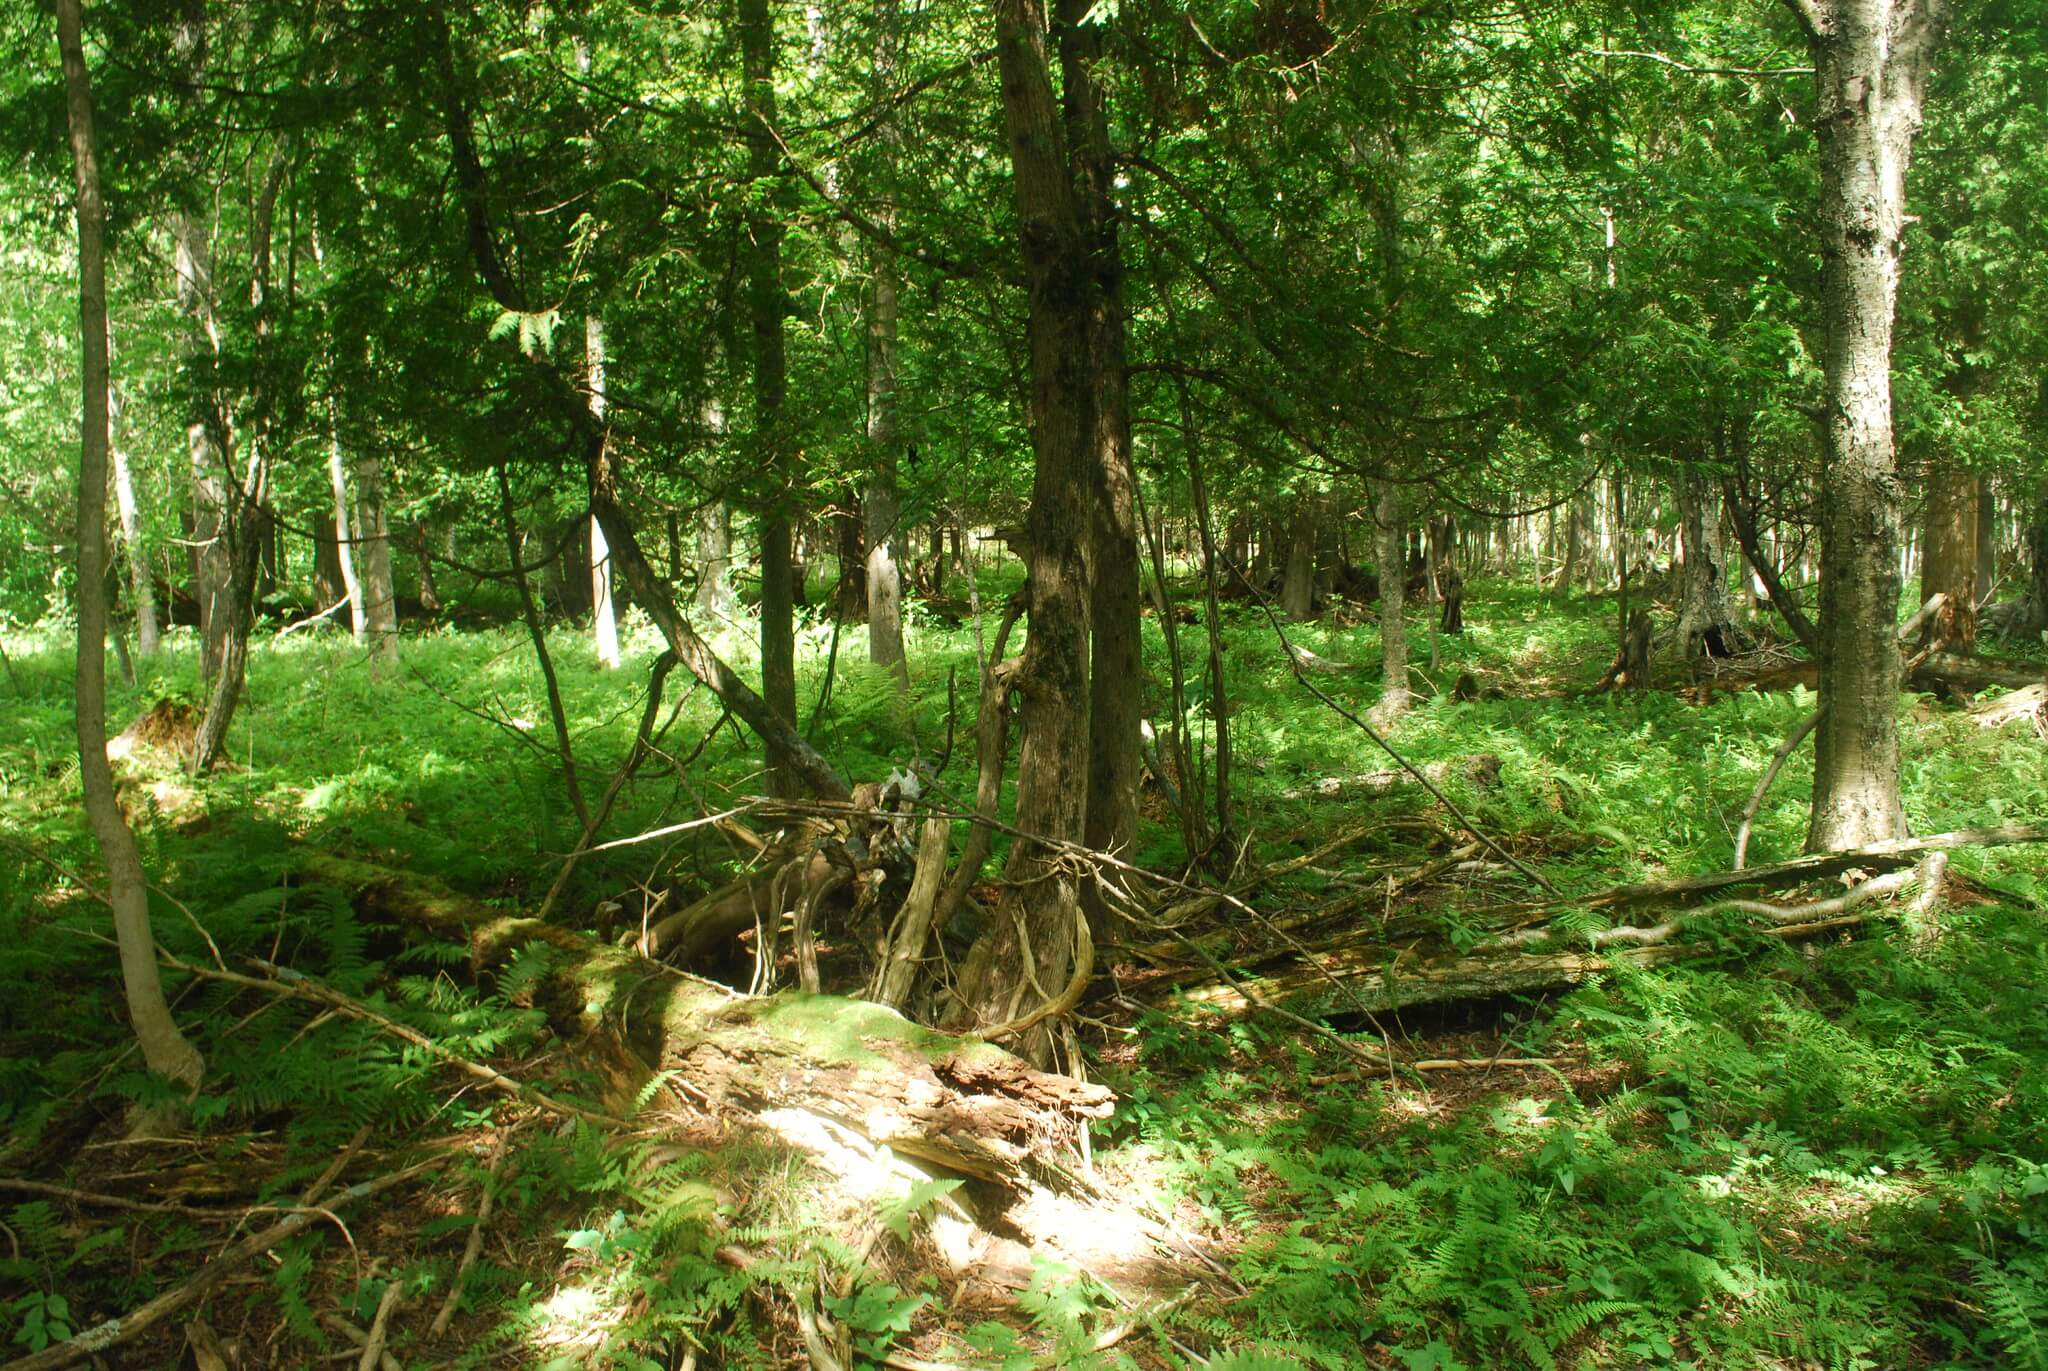 A forest in the Coffey Swamp State Natural Area